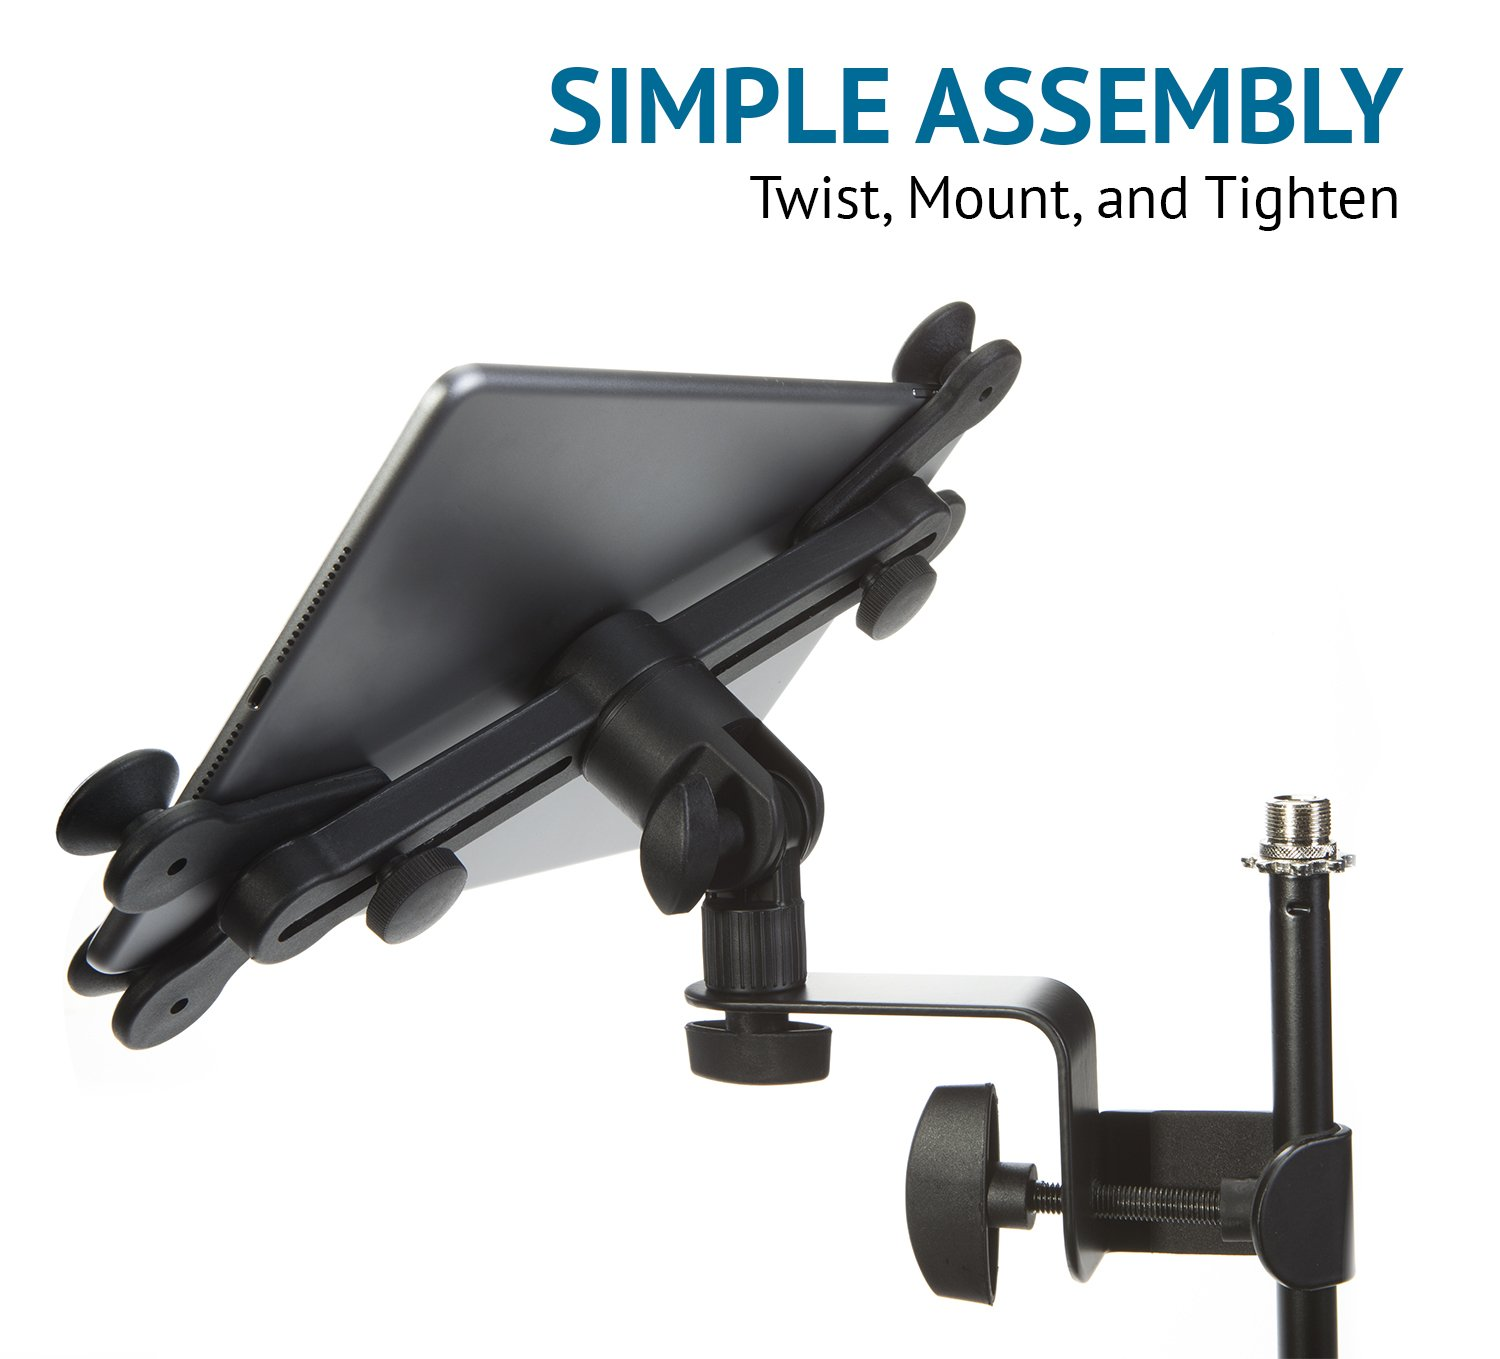 LyxPro TSM1 Microphone Music Stand Mount Holder For Tablet iPhone Ipad Smartphone And Android Adjustable 360 Degree Swivel Tilt Support Arms 3 To 11.5 Inch With Extra Detachable Clip